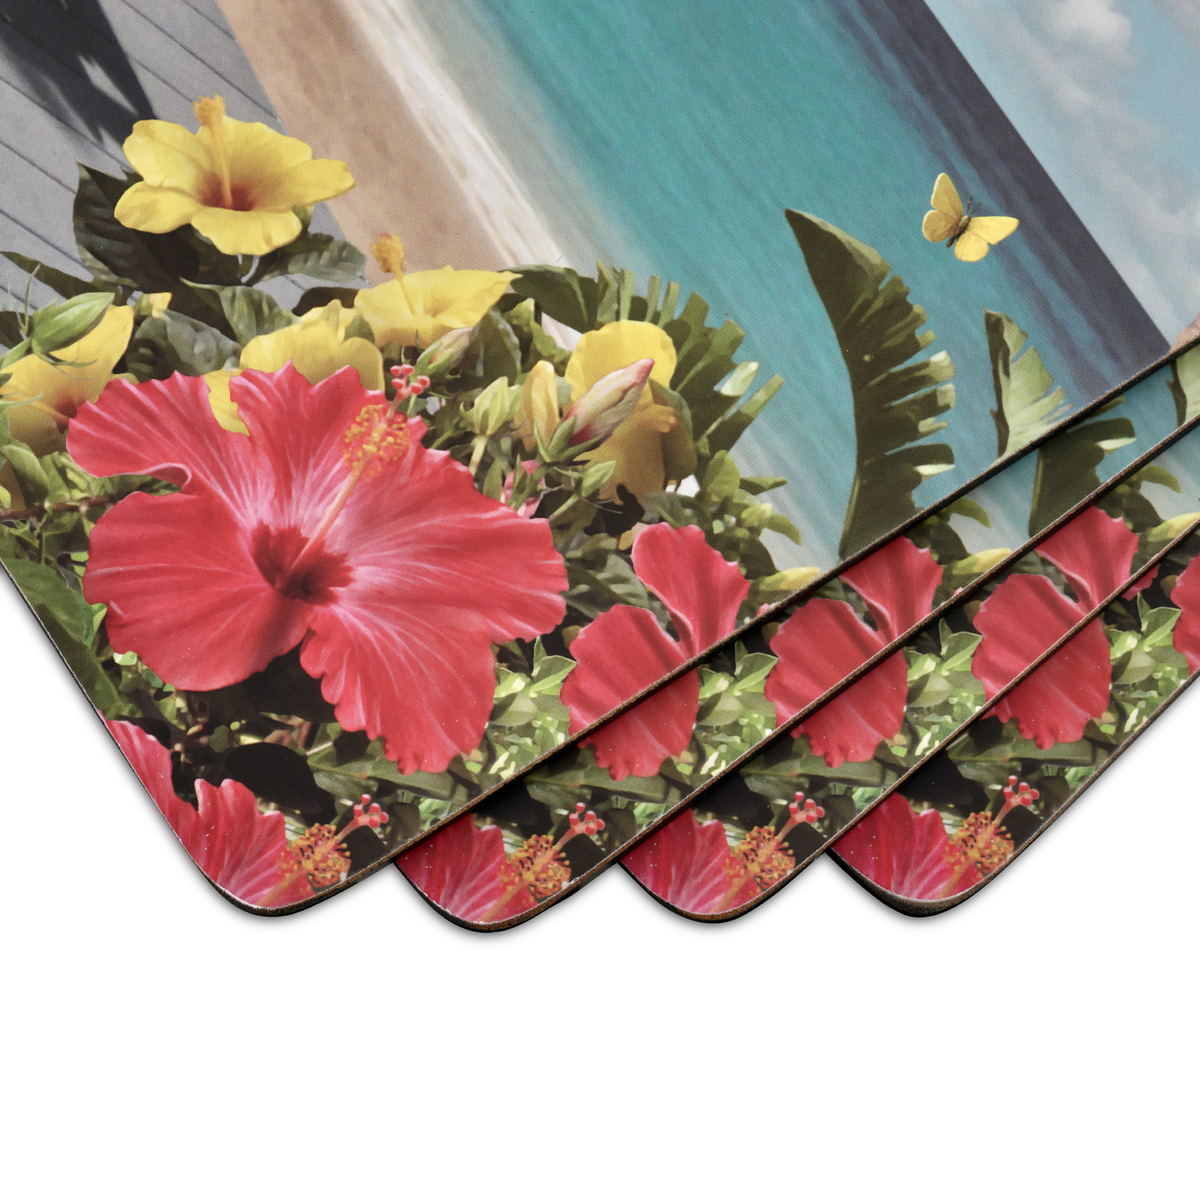 Pimpernel In The Sunshine Placemats Set of 4 image number 2